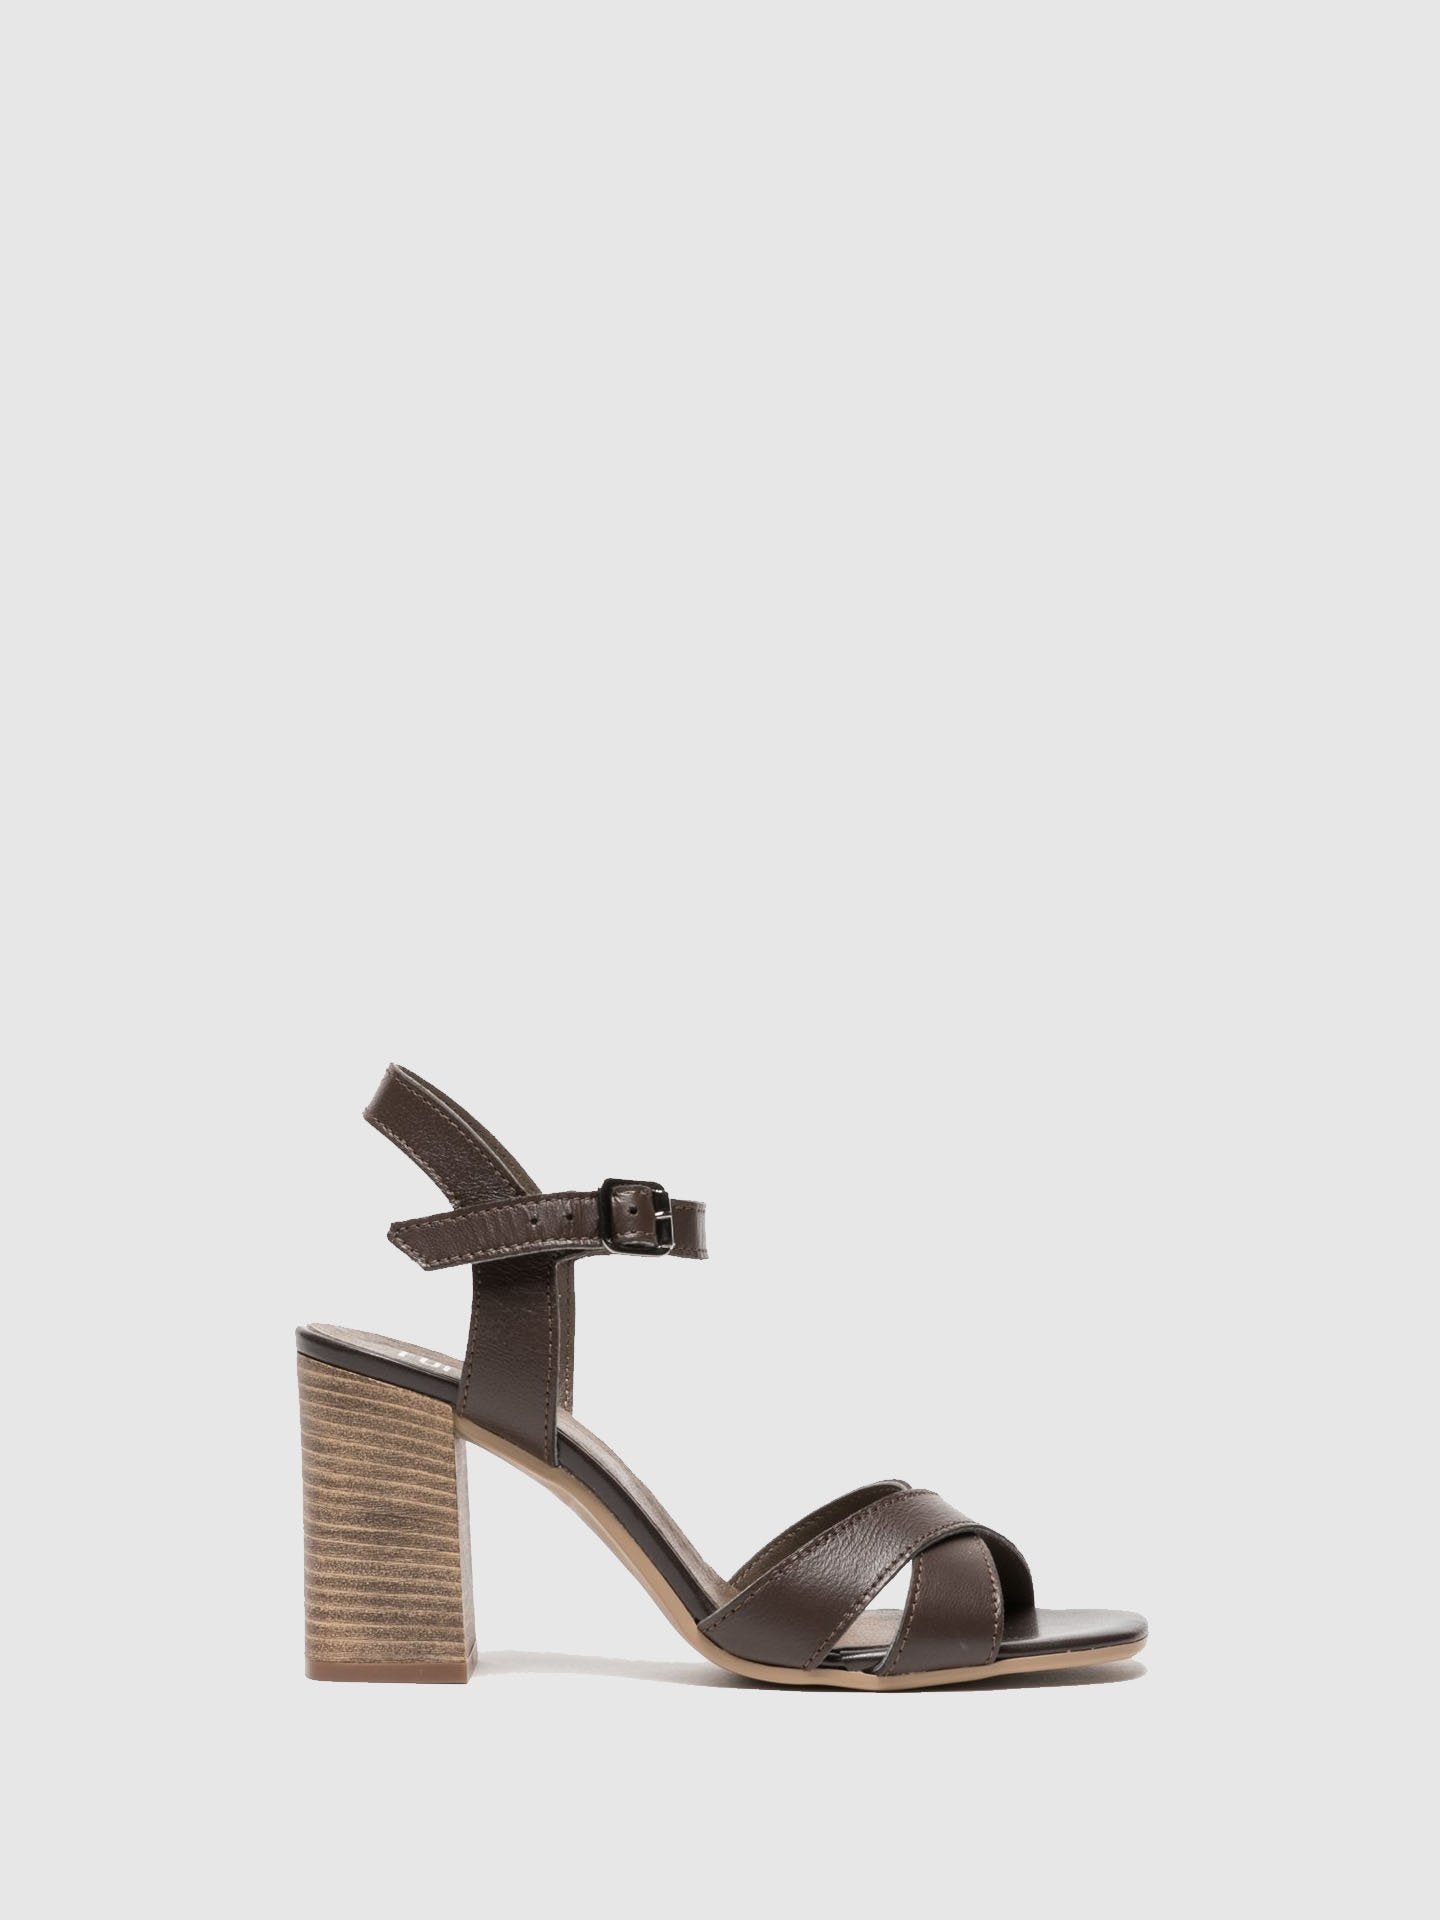 Foreva Brown Sling-Back Sandals